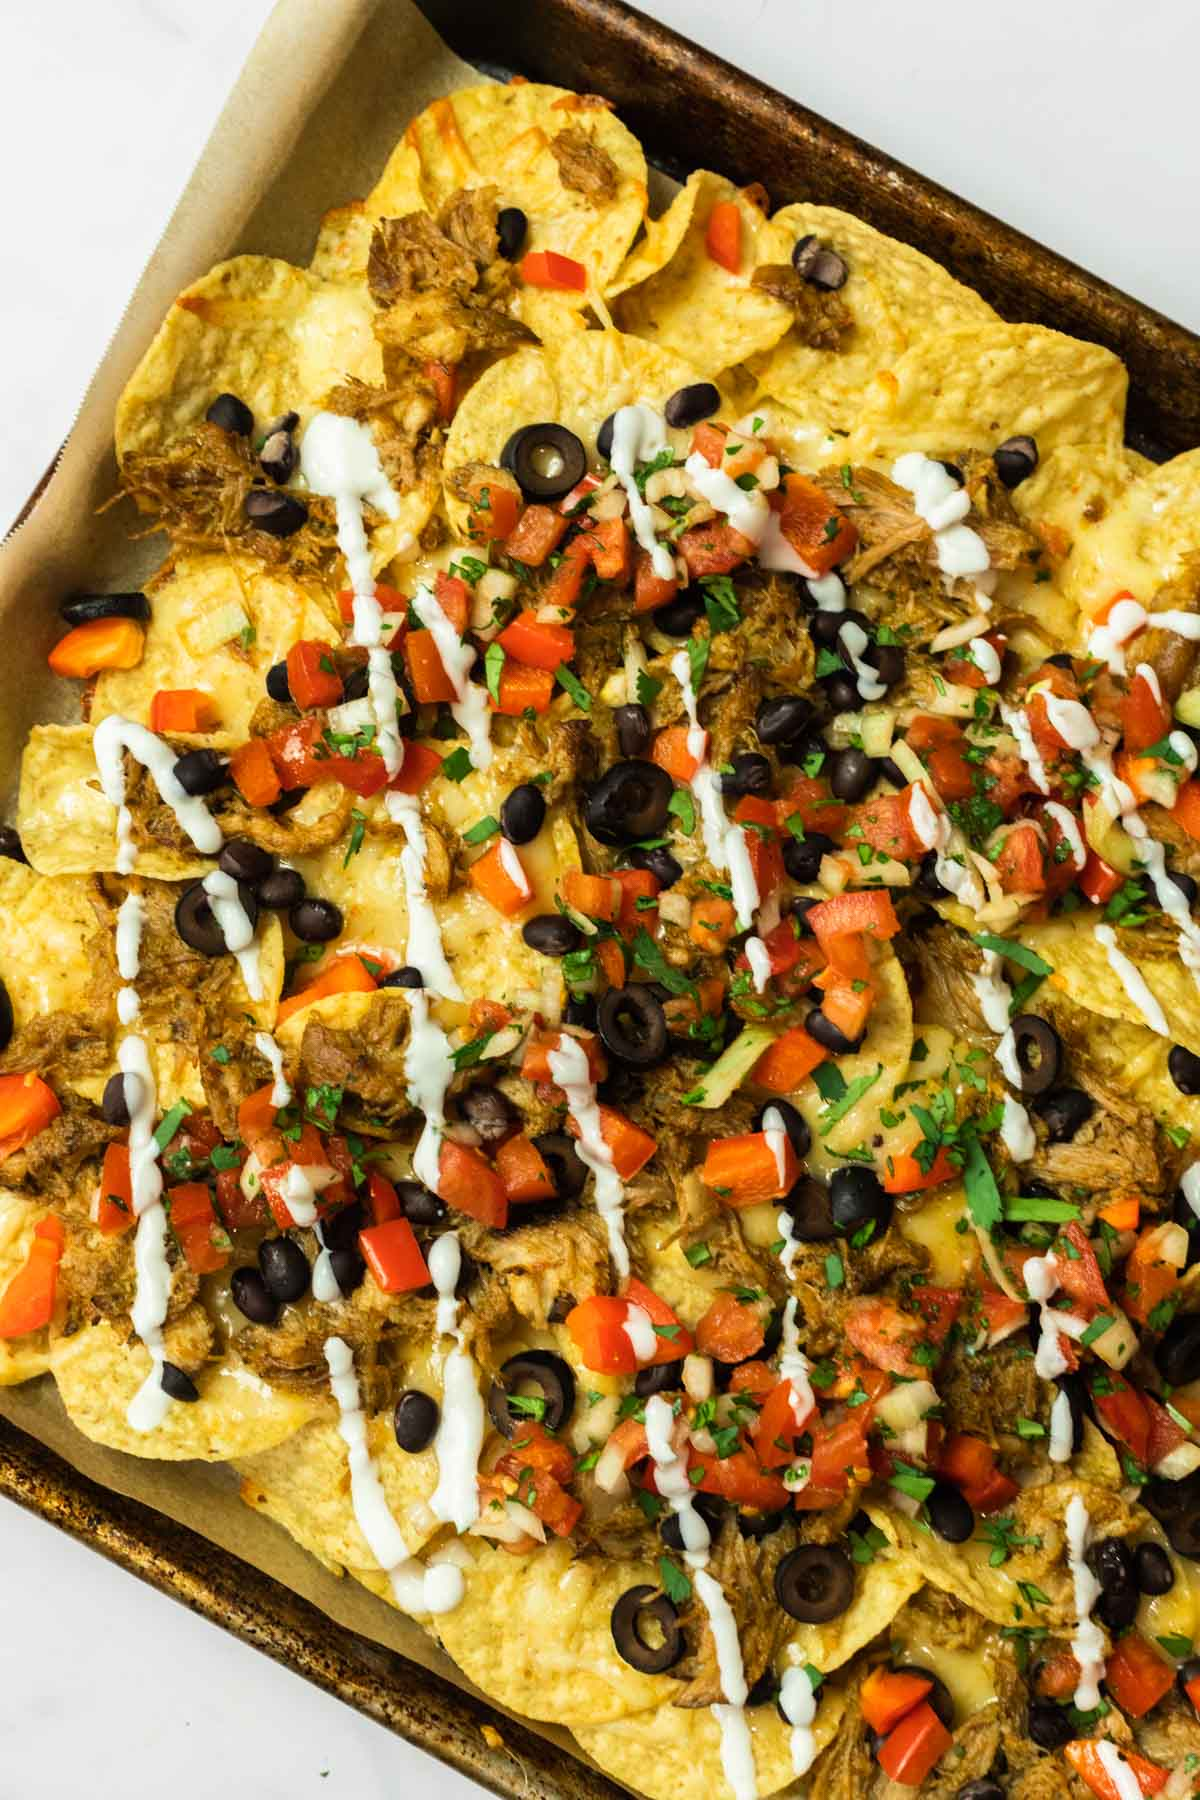 an overhead view of a tray of pulled pork nachos